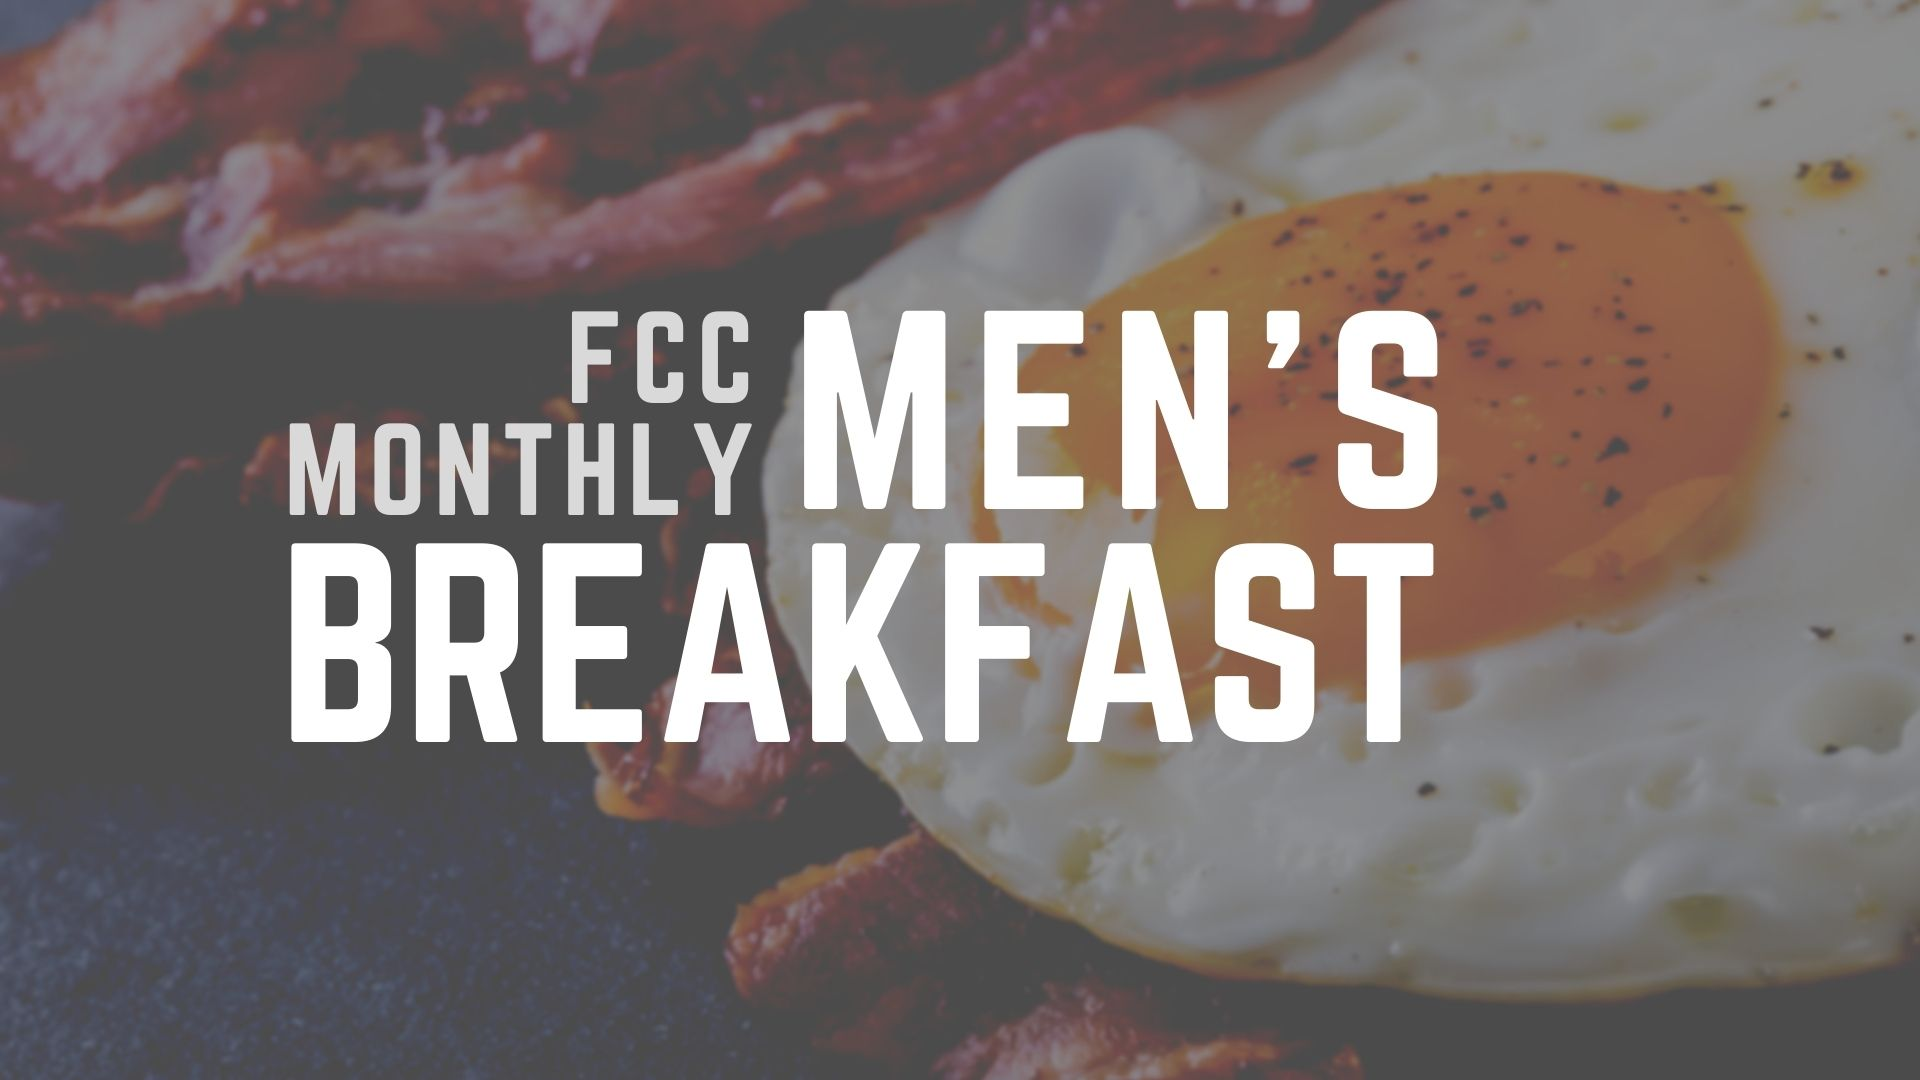 February Men's Breakfast